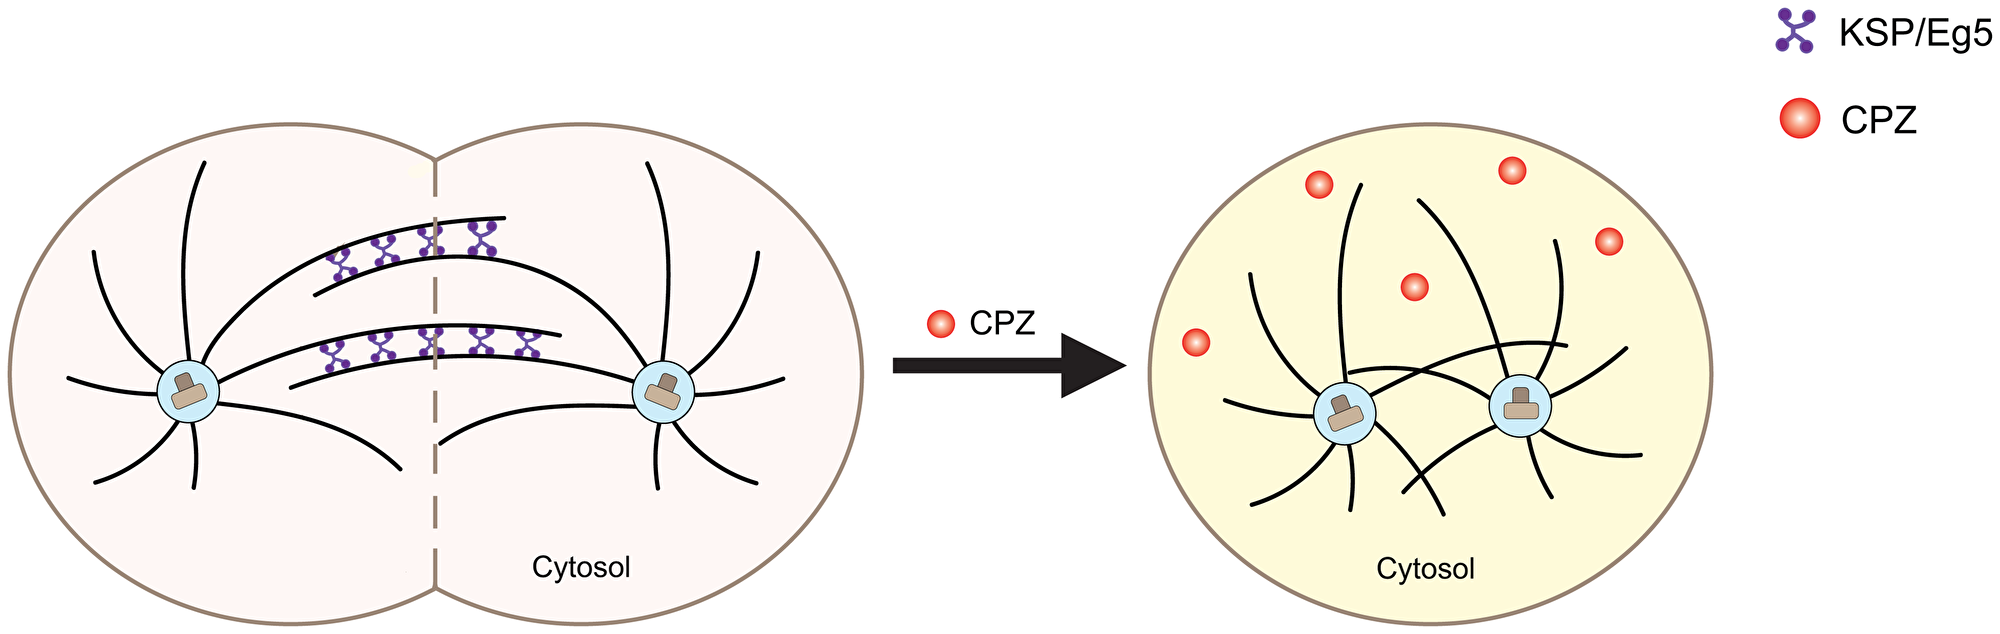 Schematic of the effect of CPZ on mitotic kinesins.